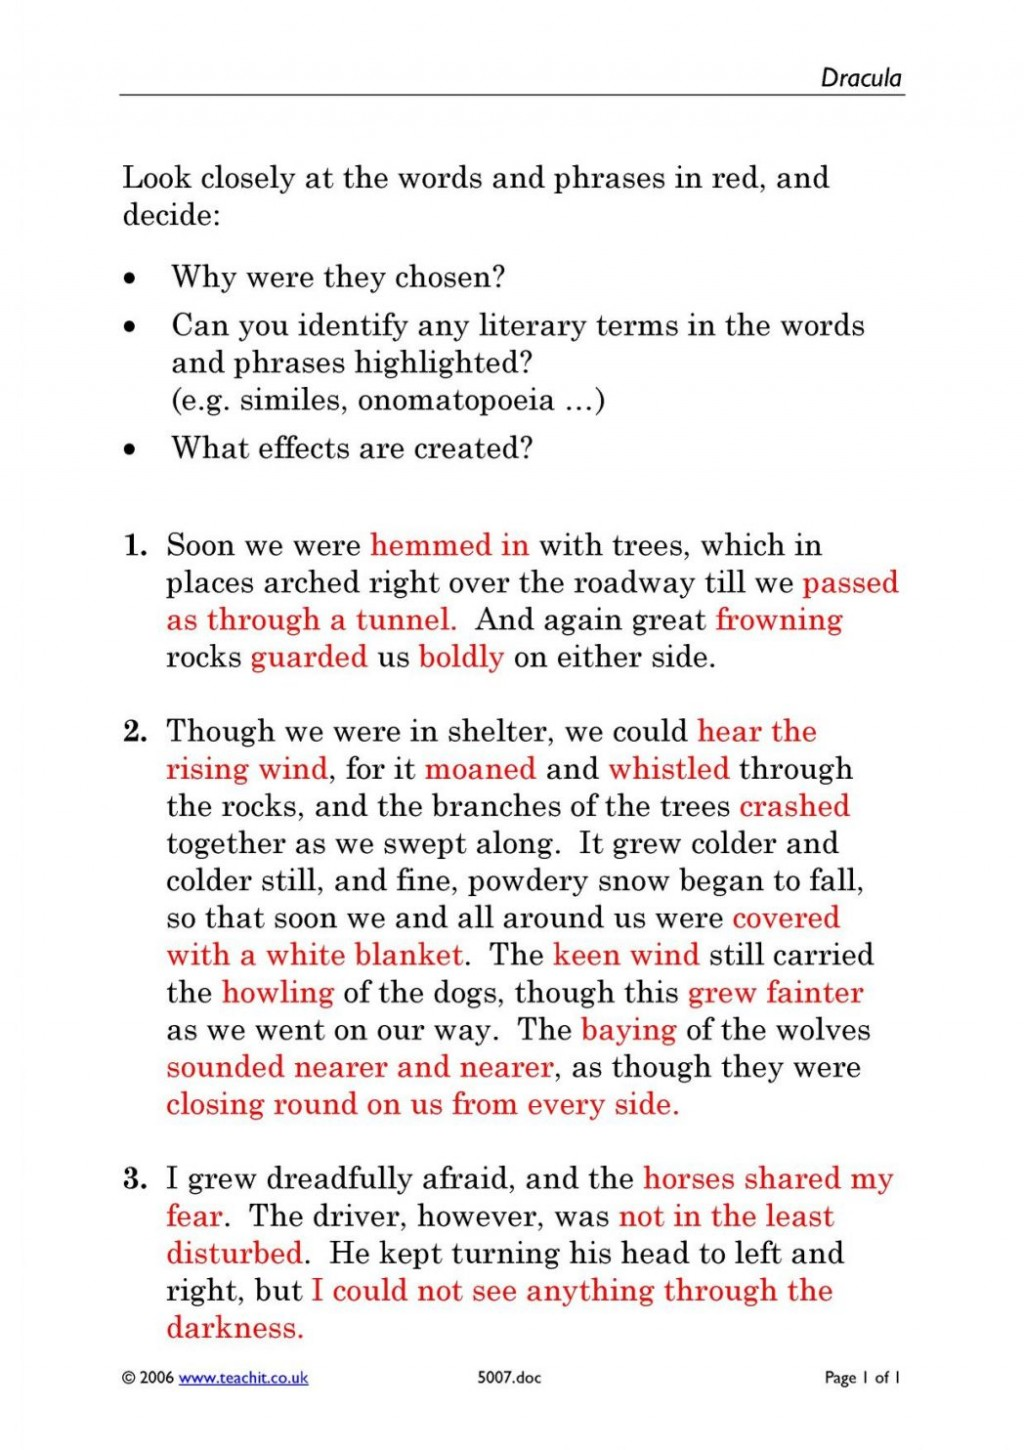 011 Essay On Stage Fear Dracula By Bram Stoker Ks4 Prose Key Resources Page Example Awful Write An Overcoming Large